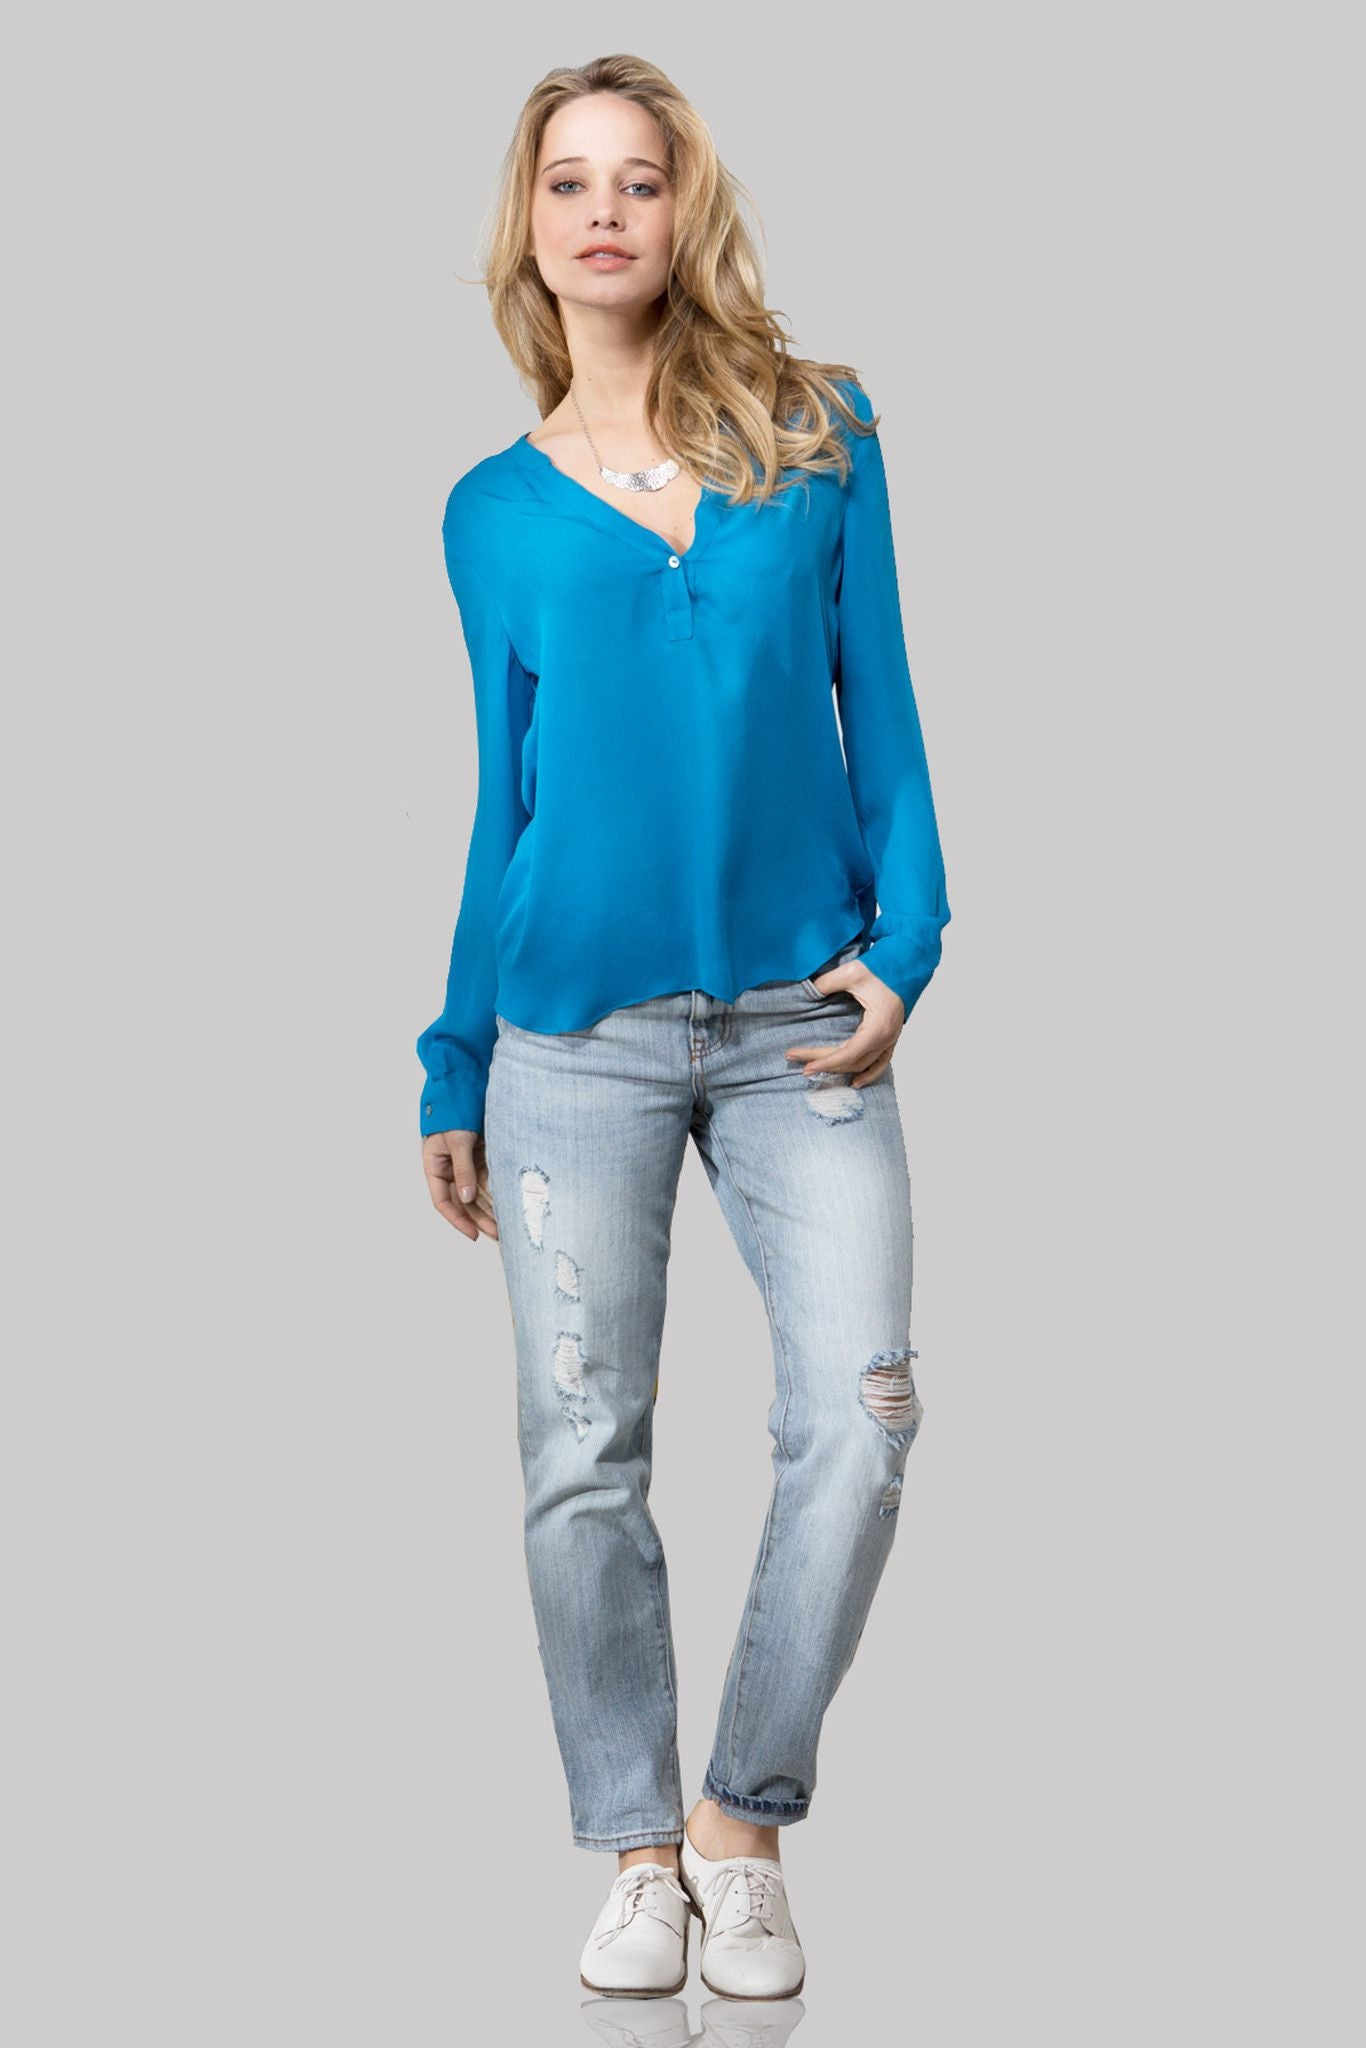 T130 LONG SLEEVE DYED TOP IN CDC OCEAN